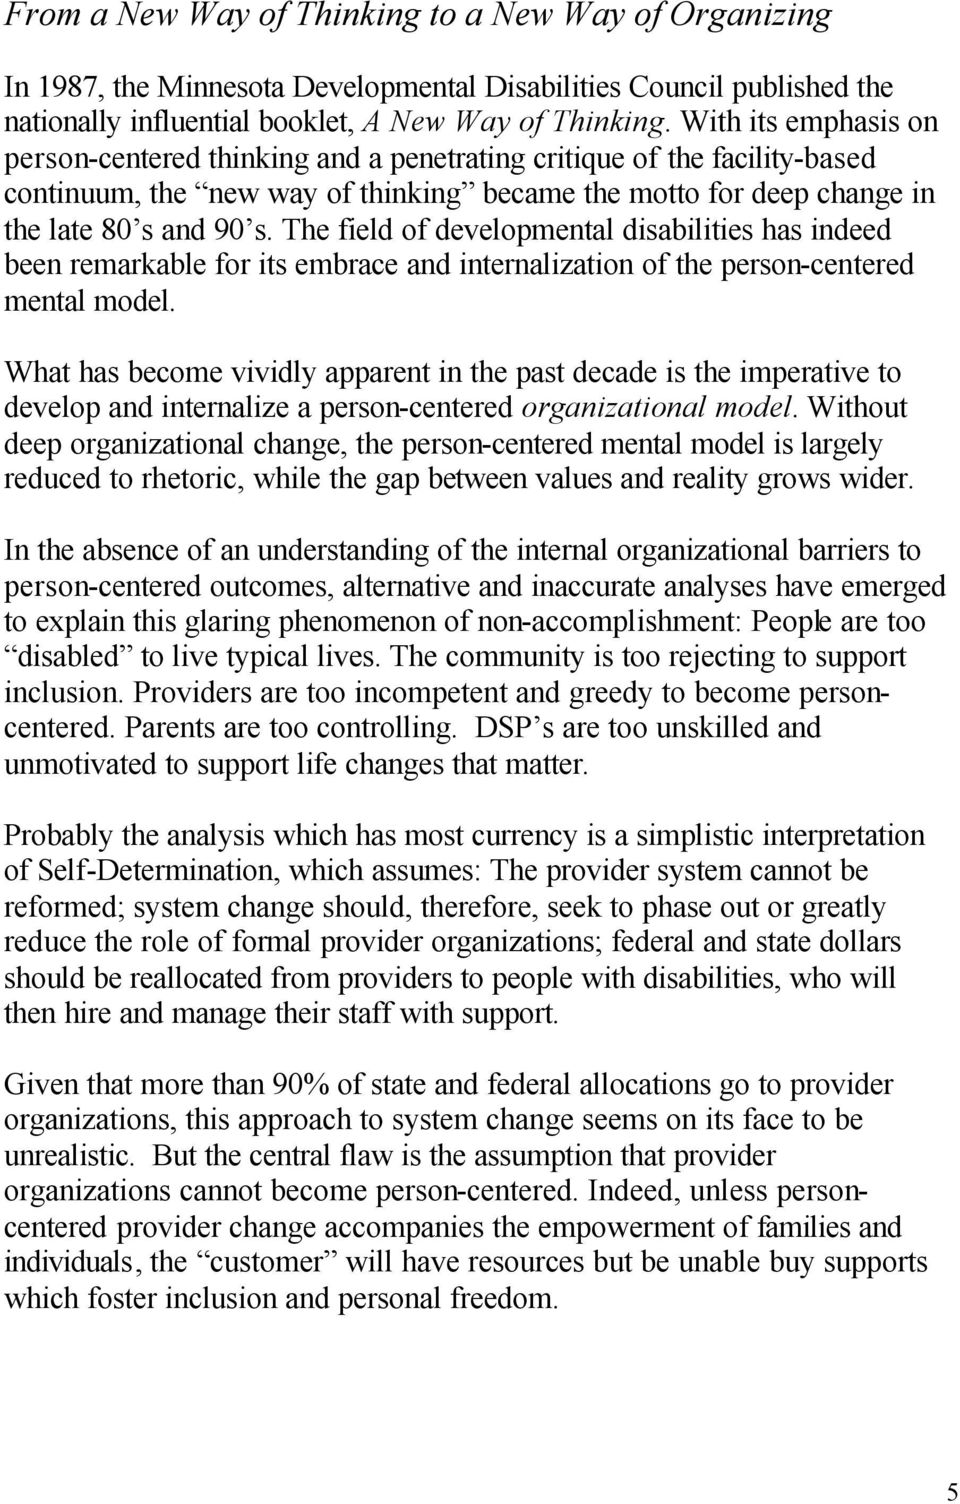 The field of developmental disabilities has indeed been remarkable for its embrace and internalization of the person-centered mental model.